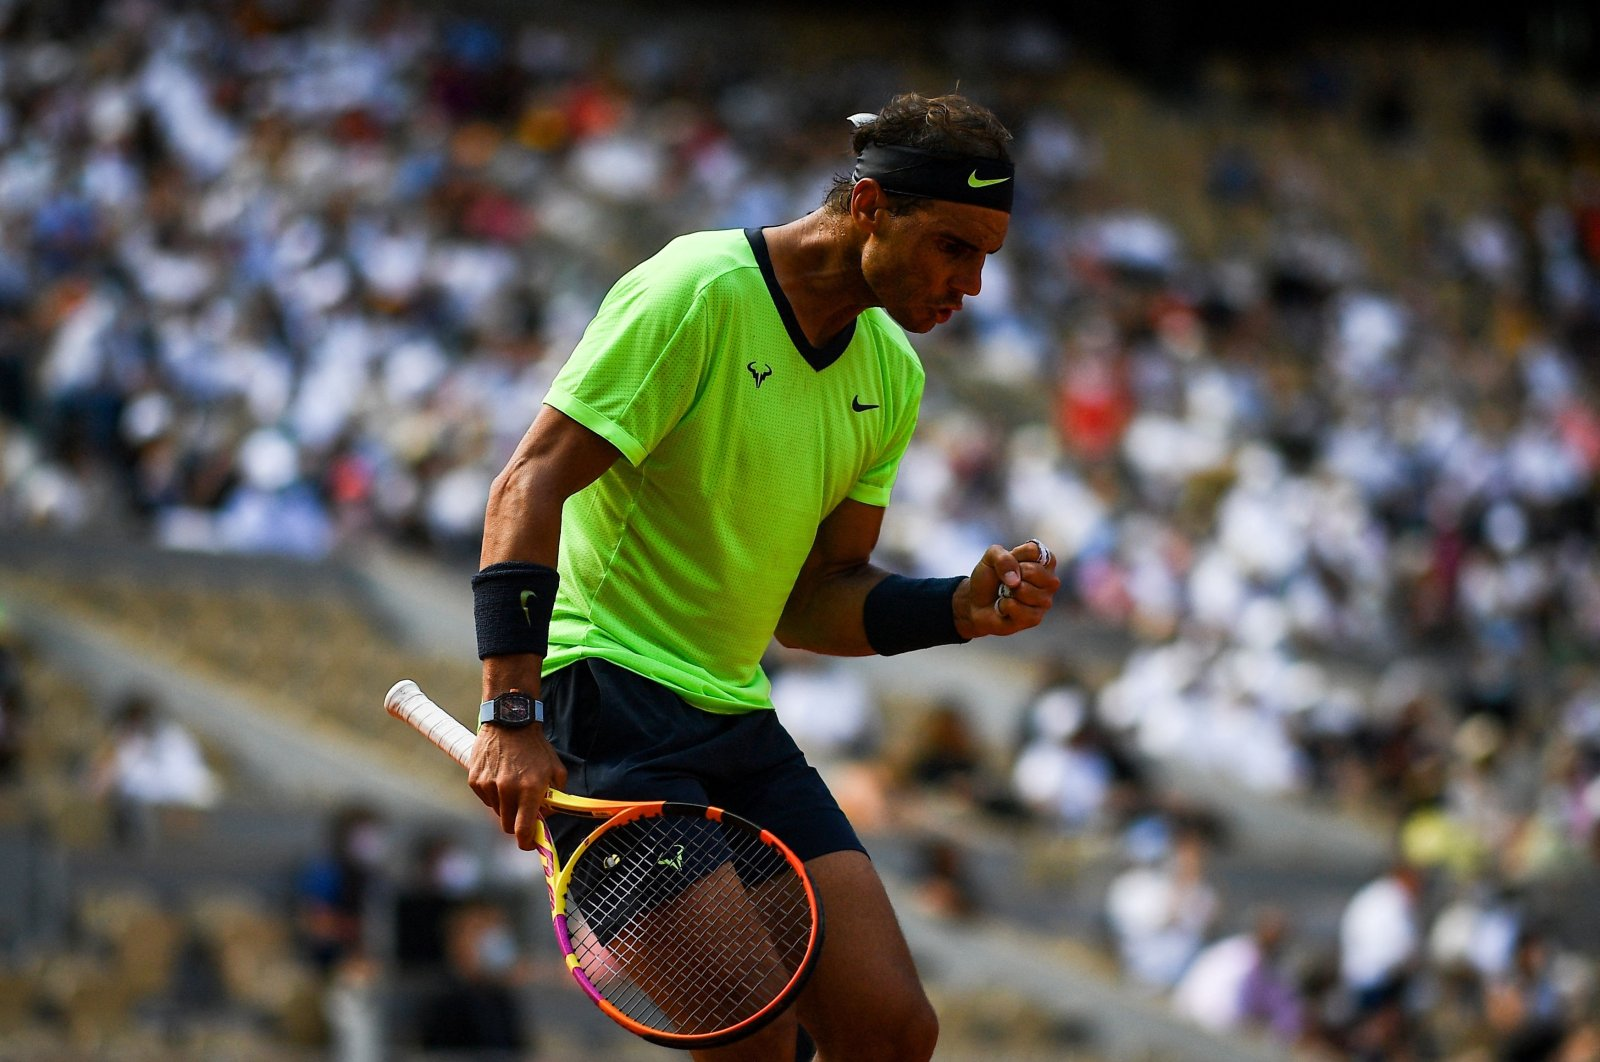 Spain's Rafael Nadal reacts as he plays against Argentina's Diego Schwartzman during their men's singles quarterfinal tennis match on Day 11 of The Roland Garros 2021 French Open tennis tournament in Paris, France, on June 9, 2021. (AFP Photo)